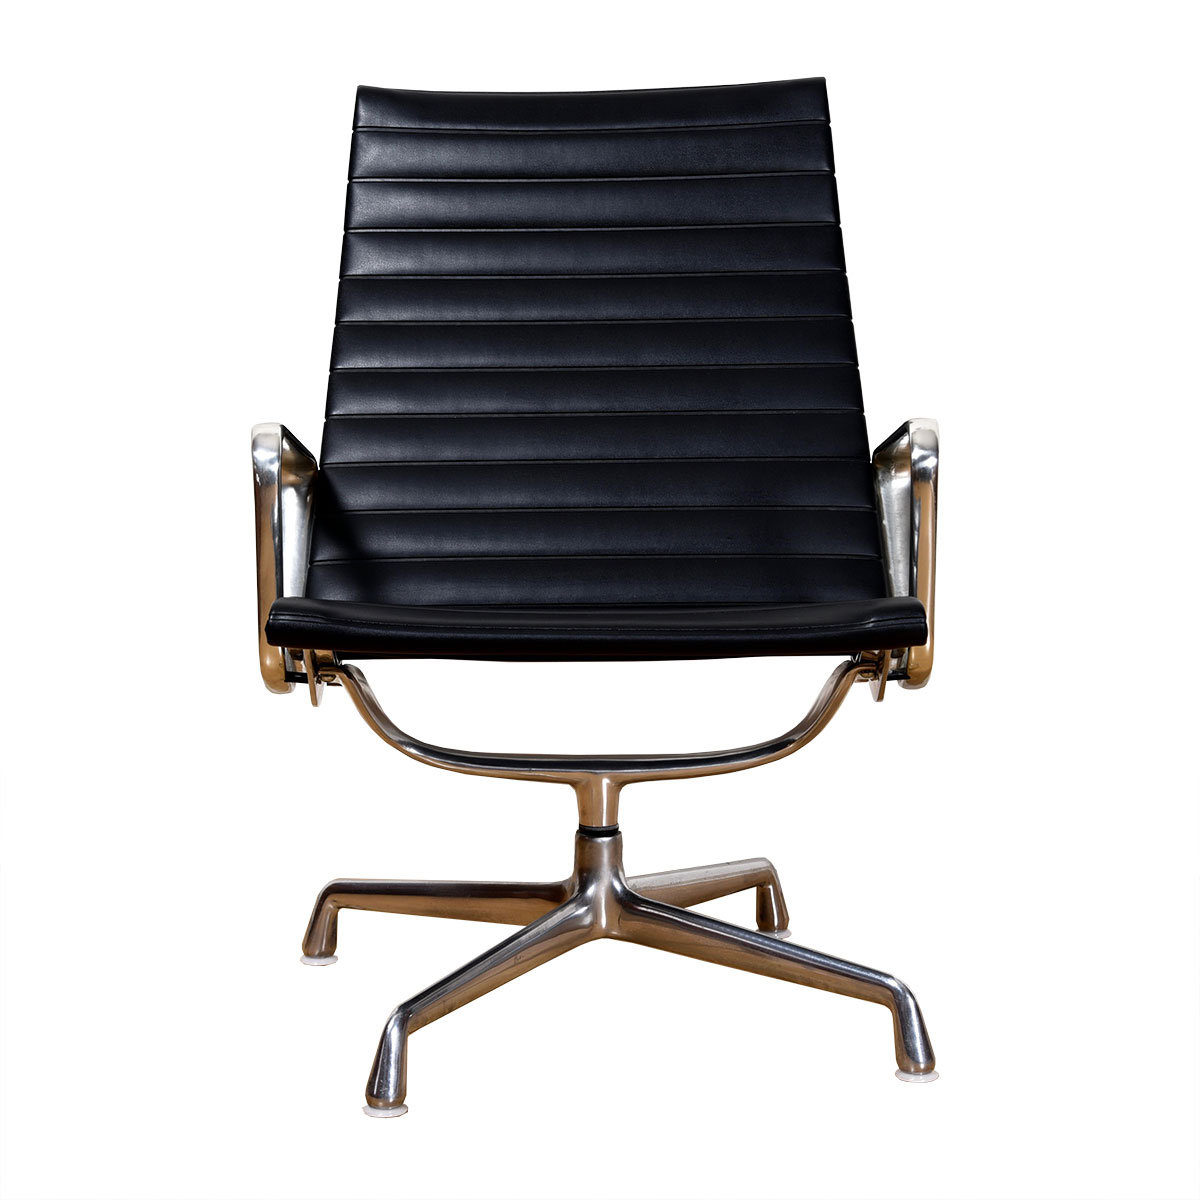 Classic Aluminum Group Arm Chair by Charles and Ray Eames for Herman Miller in Black